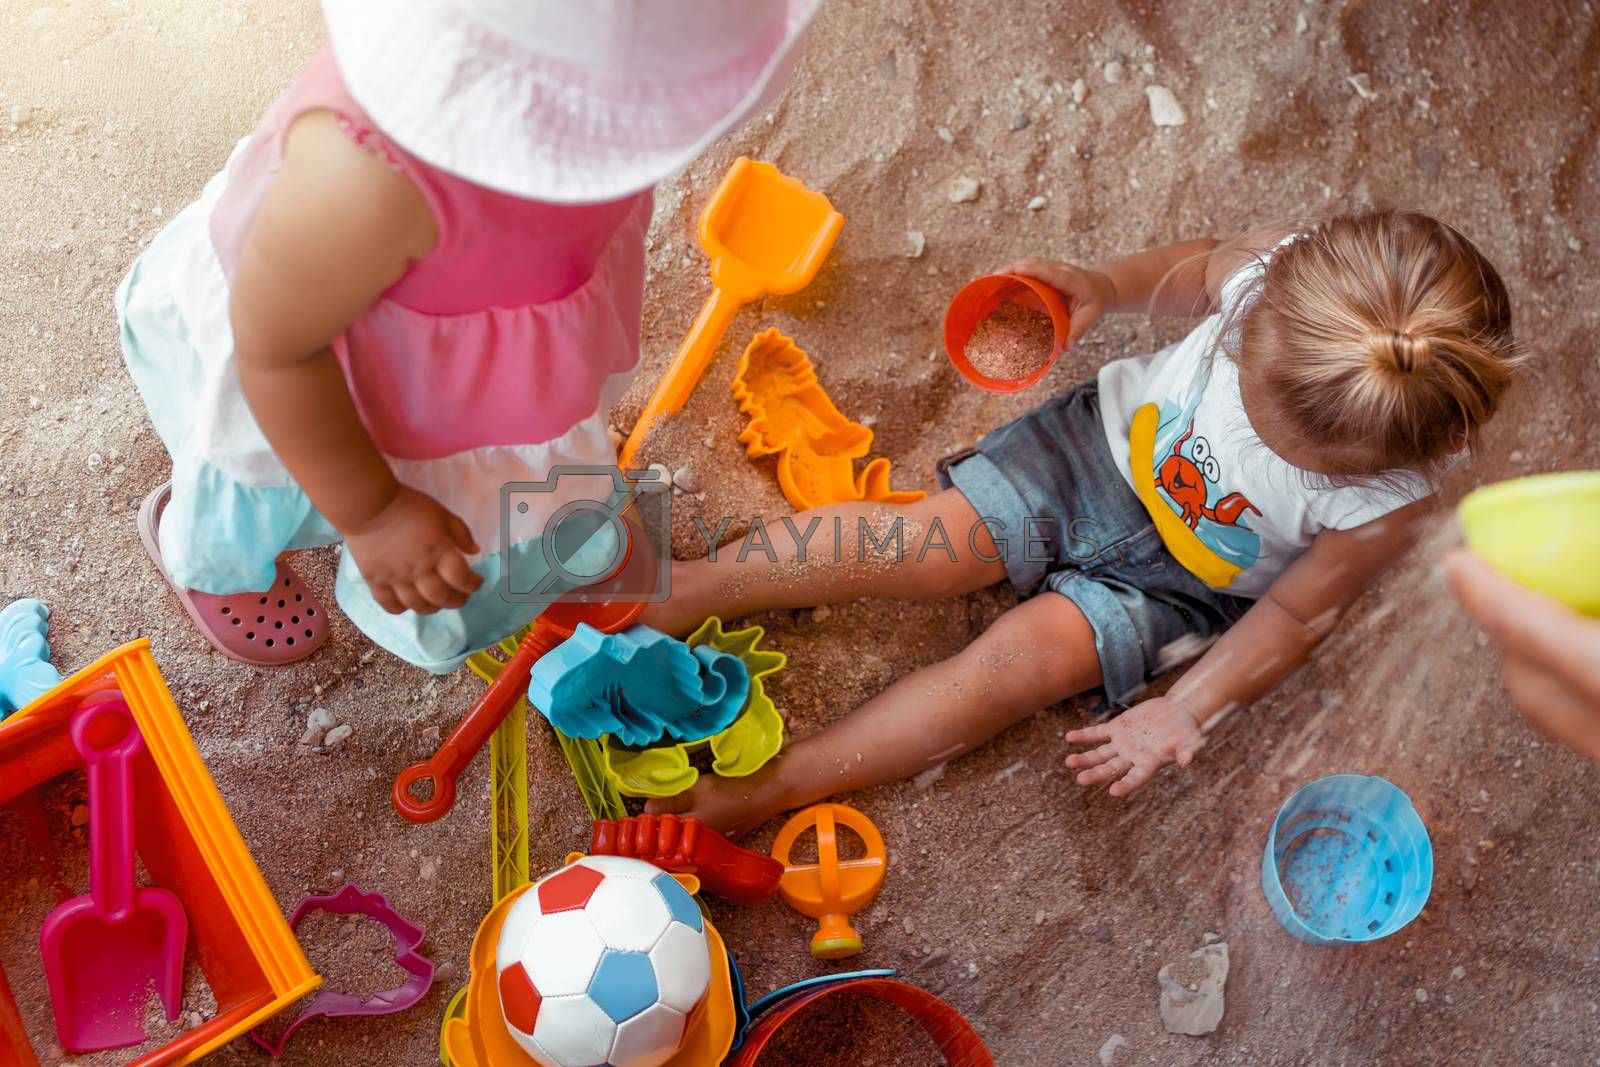 Two Happy Little Kids Playing with Different Colorful Toys in Sandbox. With Pleasure Spending Summer Holidays on the Beach. Enjoying Childhood. Best Friends Forever.